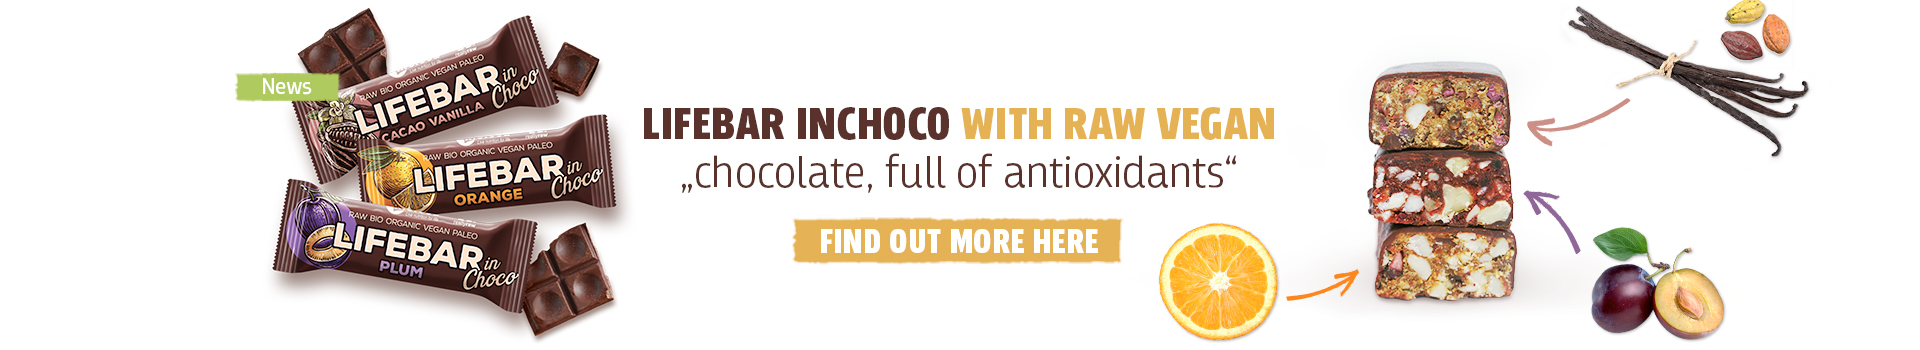 New inChoco bars